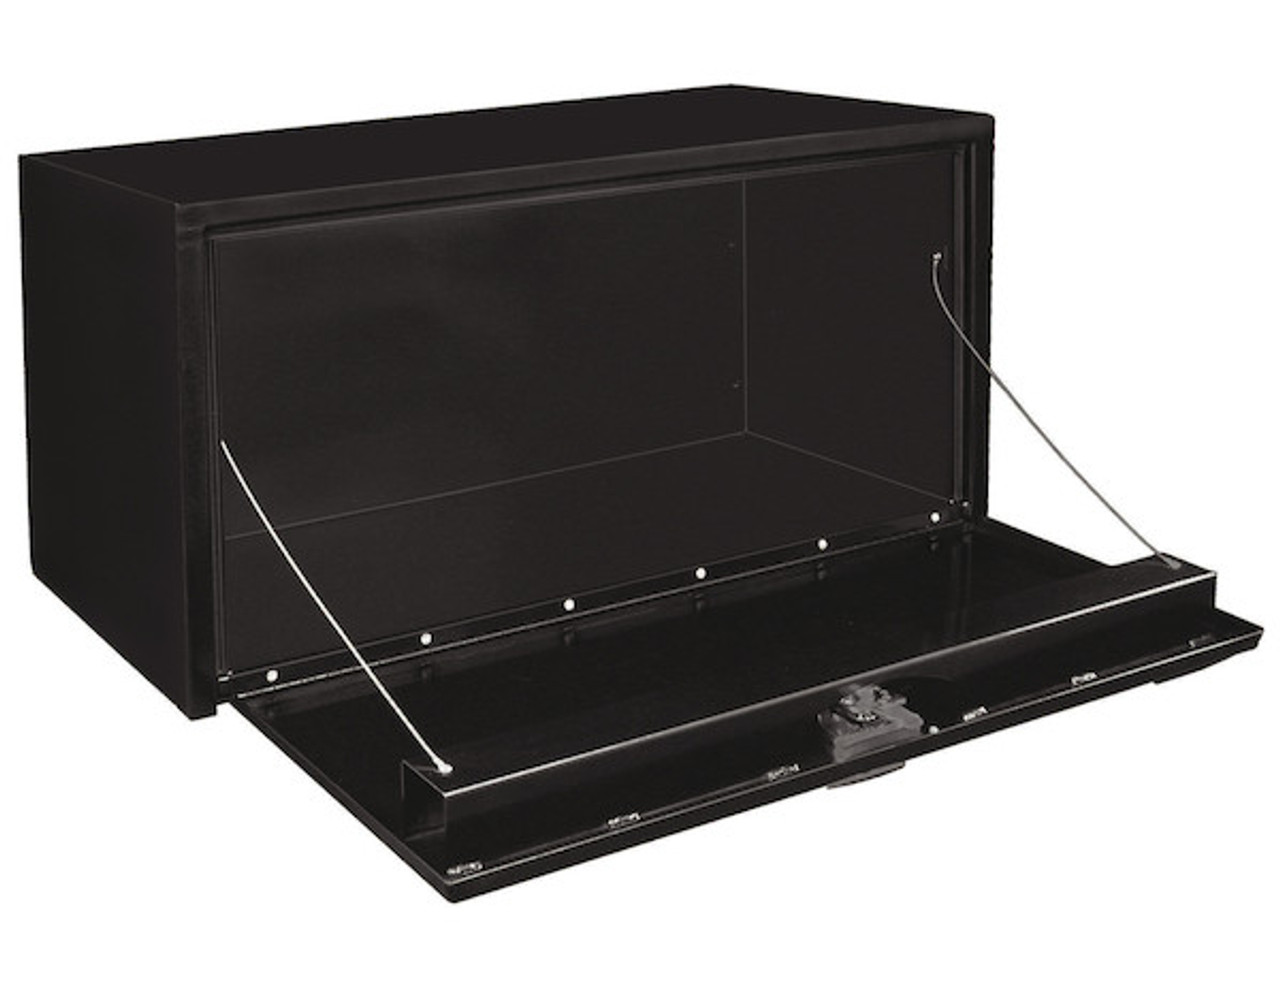 1703303 BUYERS PRODUCTS BLACK STEEL UNDERBODY TRUCK BOX WITH T-LATCH TOOLBOX